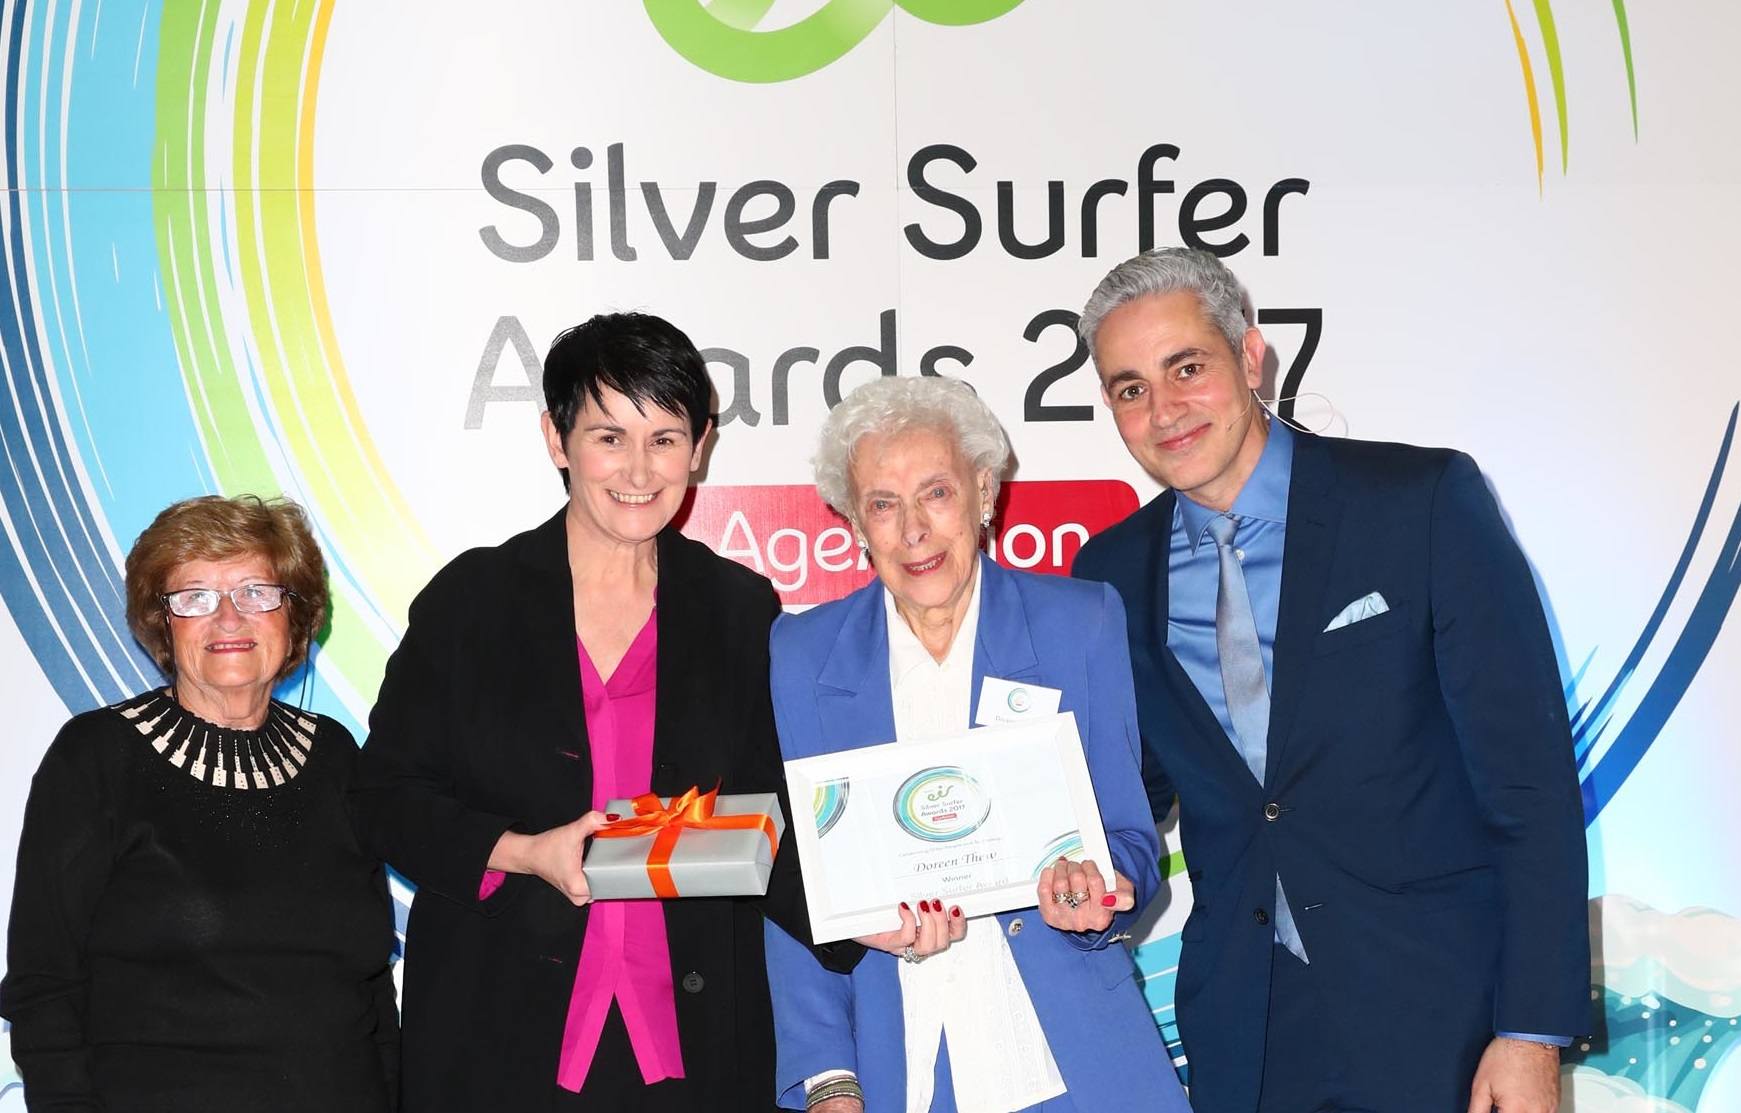 Doreen Thew, winner of the 2017 Silver Surfer Award